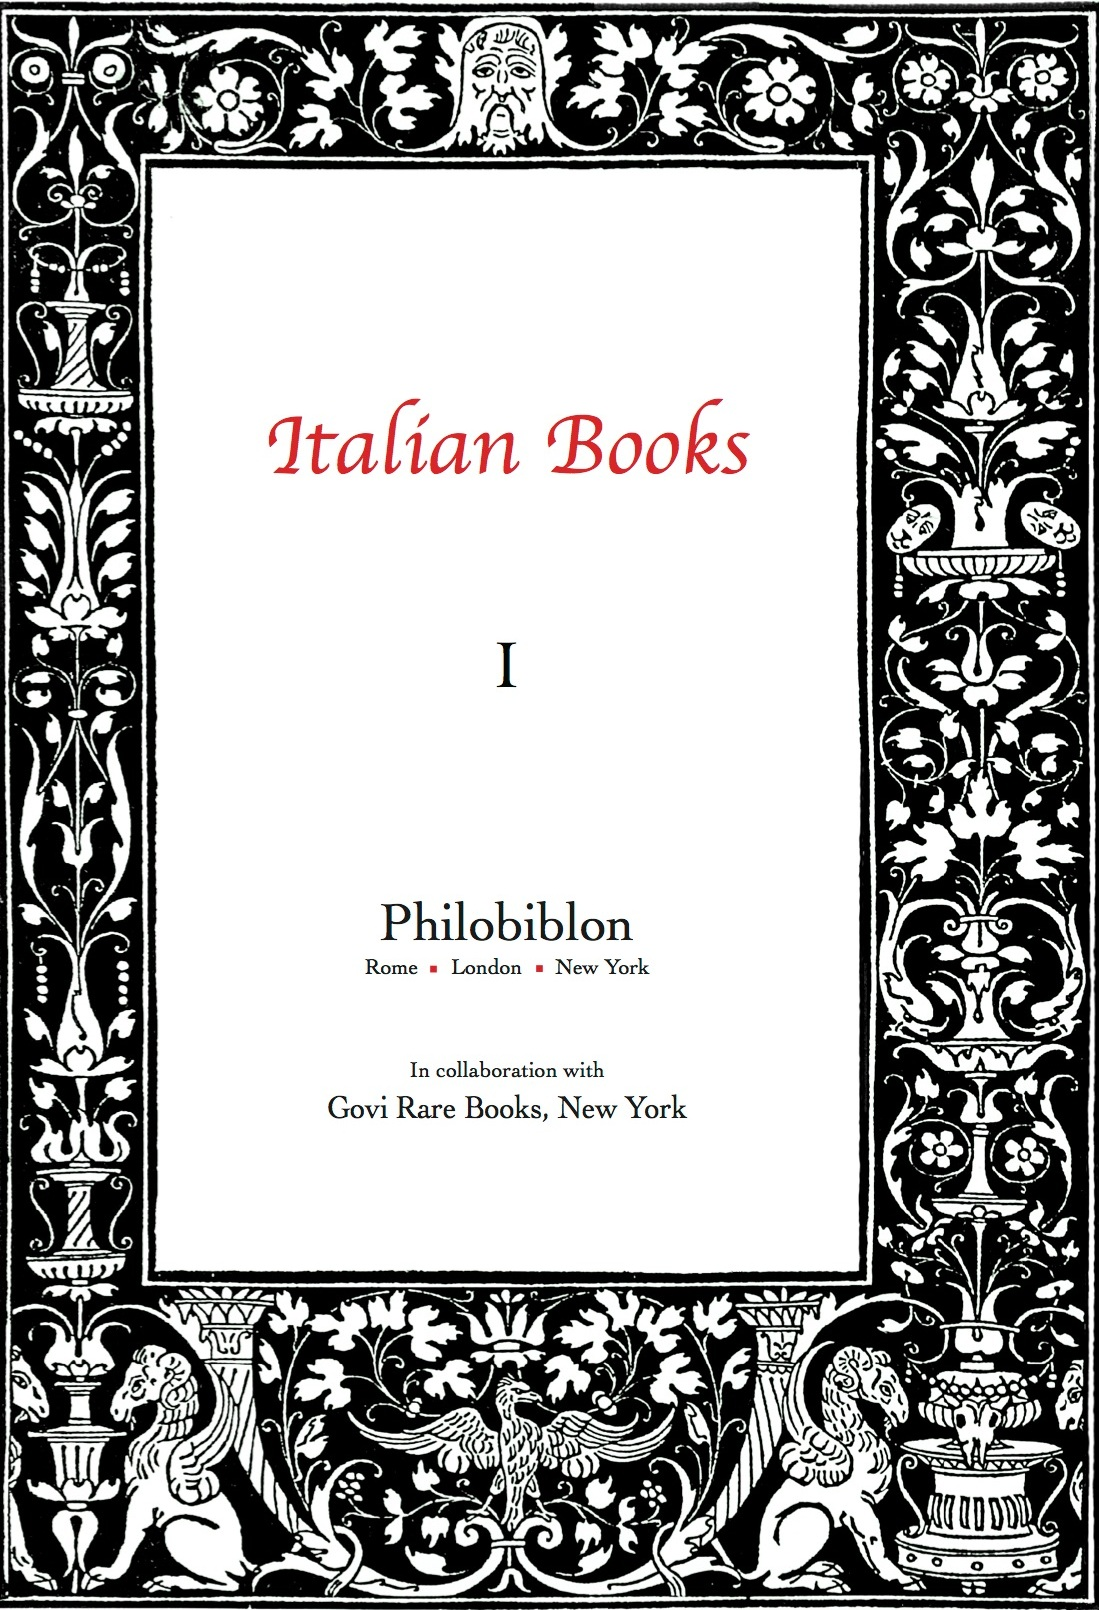 Italian Books  Philobiblon's new publishing initiative Italian Books, a series of numbered catalogues devoted to the important place of Italian culture on the world stage. The catalogues will feature manuscripts, documents, printed books, engravings, drawings, and artist's books produced in Italy, as well as Italian books printed outside the country, translations attesting to the impact of Italian culture abroad, including volumes finely bound by sought-after Italian binders, and those once owned by great protagonists of Italian book collecting. Together these selections will illuminate a journey into the multifarious Italian book world in the broadest and richest sense.